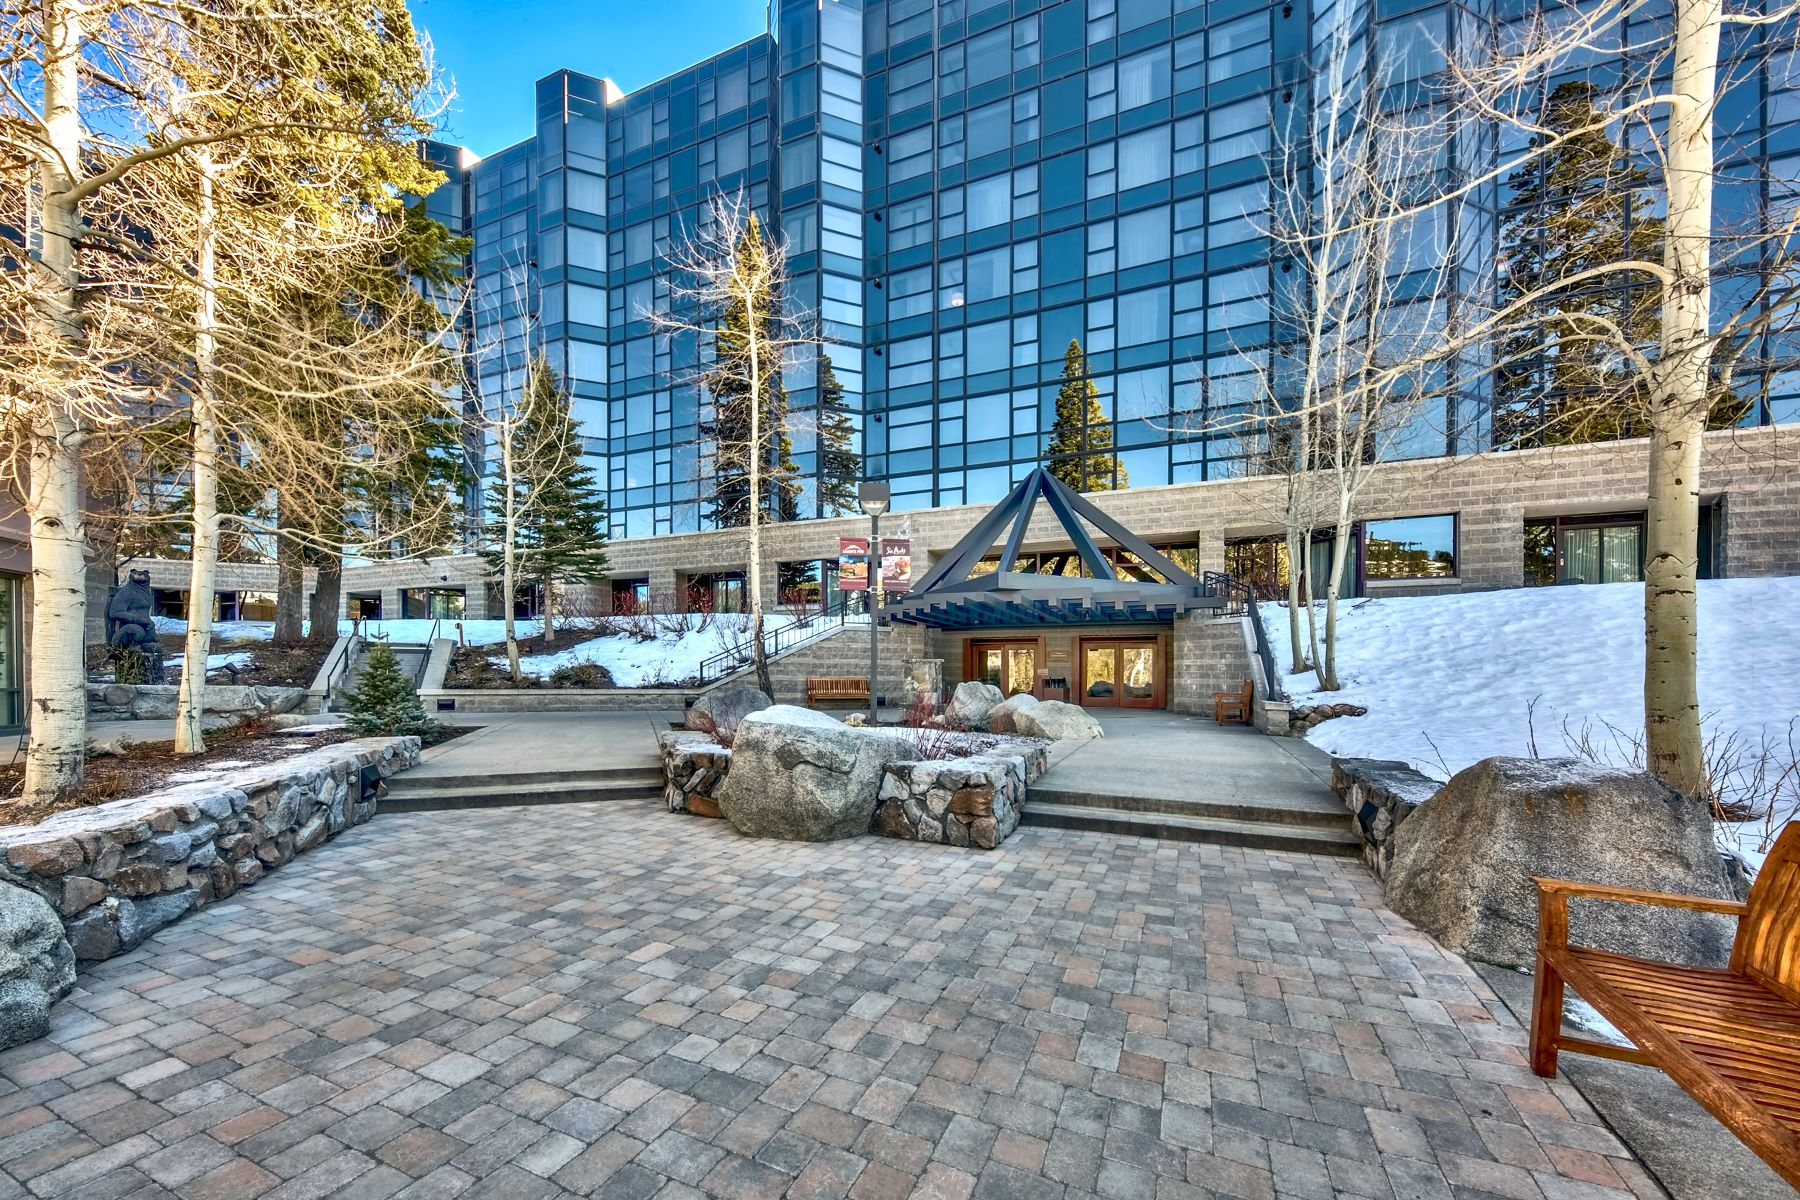 Additional photo for property listing at 400 Squaw Creek Road #335, Olympic Valley, CA 400 Squaw Creek Road #335 奥林匹克山, 加利福尼亚州 96146 美国